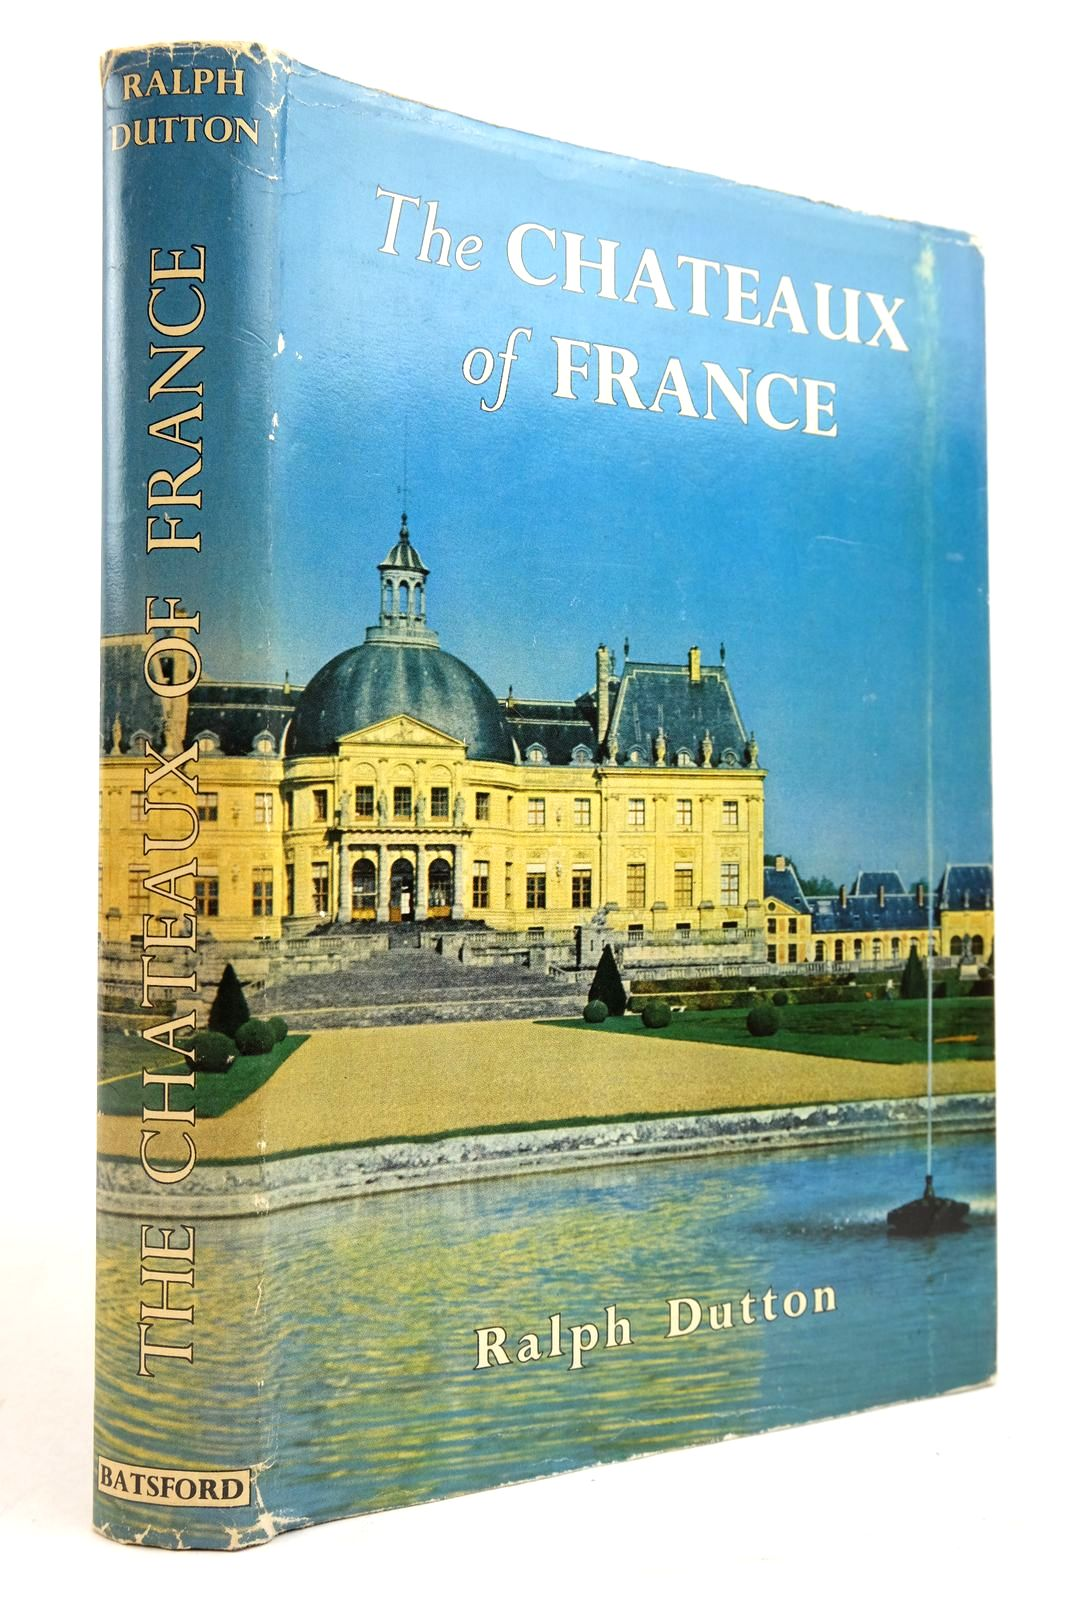 Photo of THE CHATEAUX OF FRANCE written by Dutton, Ralph published by B.T. Batsford (STOCK CODE: 2134701)  for sale by Stella & Rose's Books